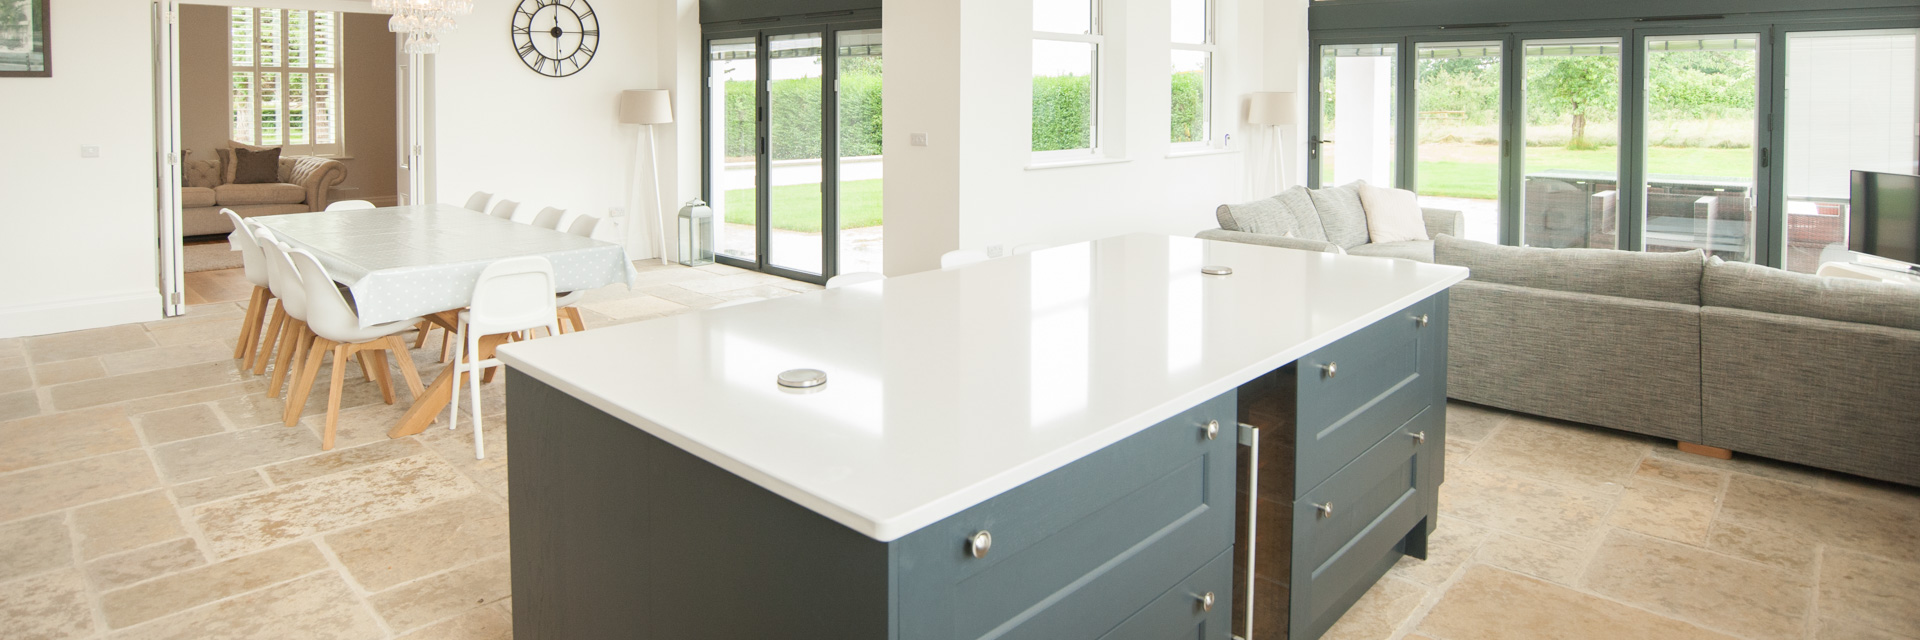 Builders In Taunton - Adsborough Builders - Based In Somerset